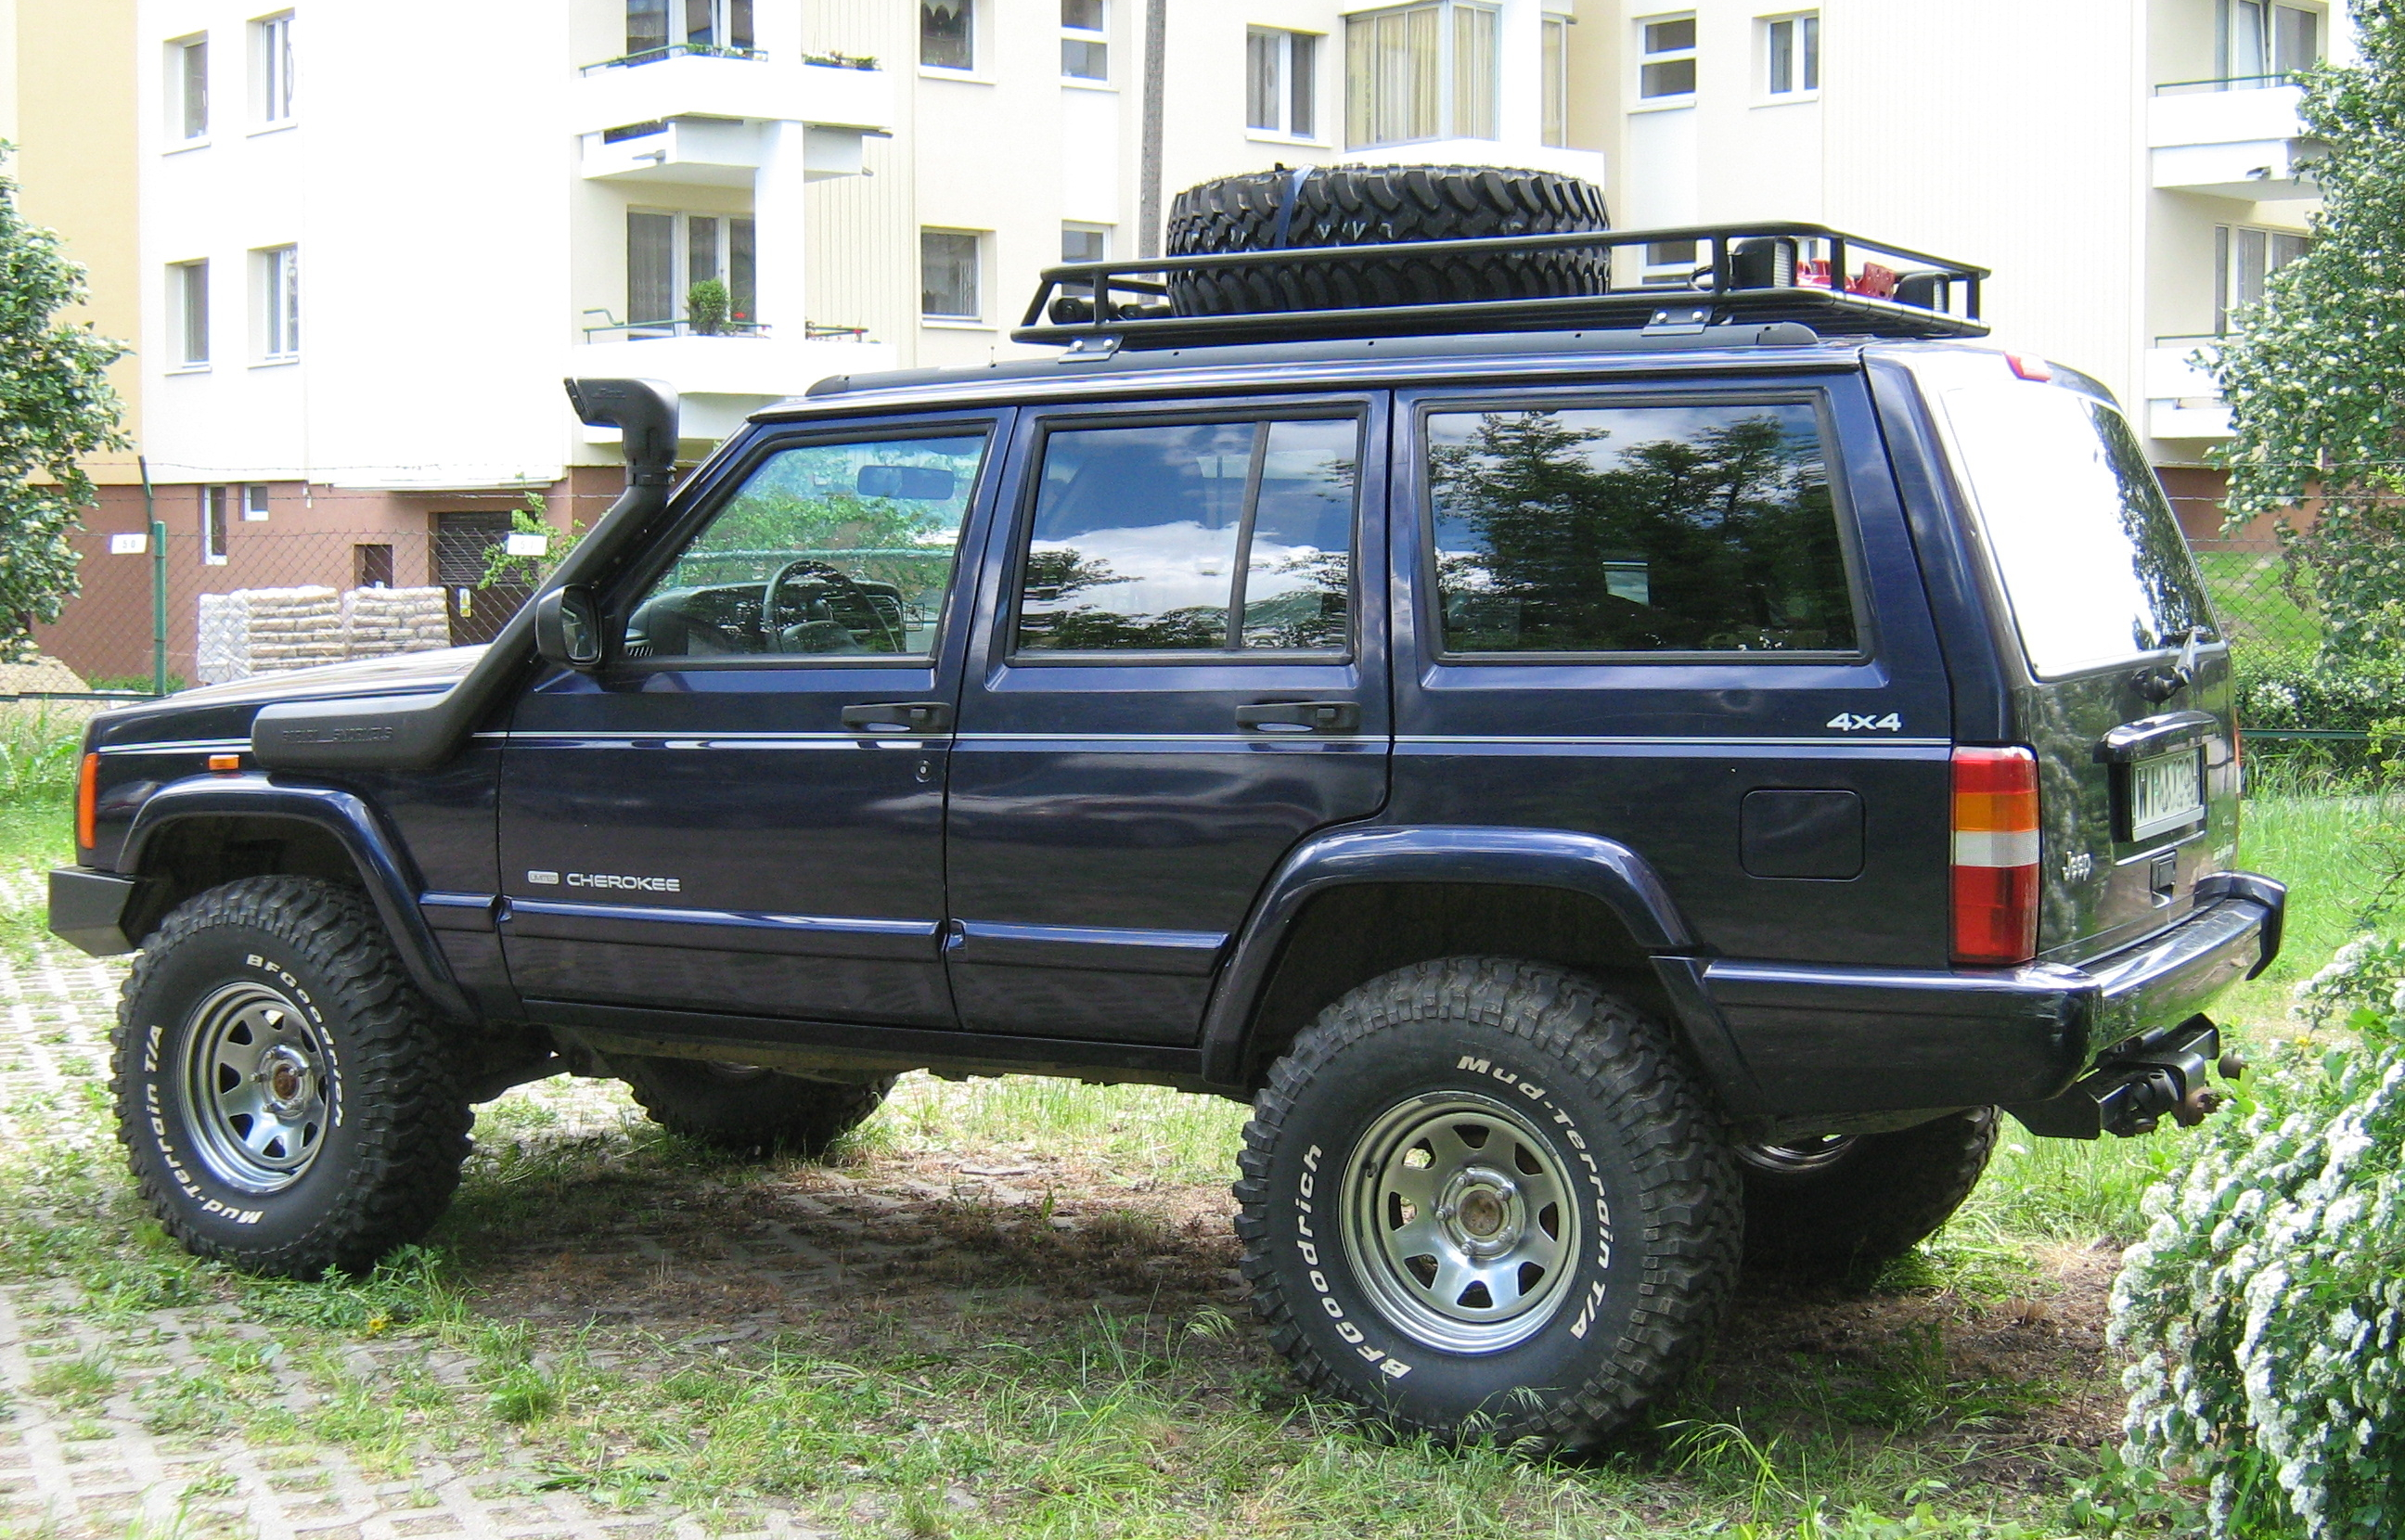 FileJeep Cherokee XJ Lifted Blue Warsaw Apartment Parking